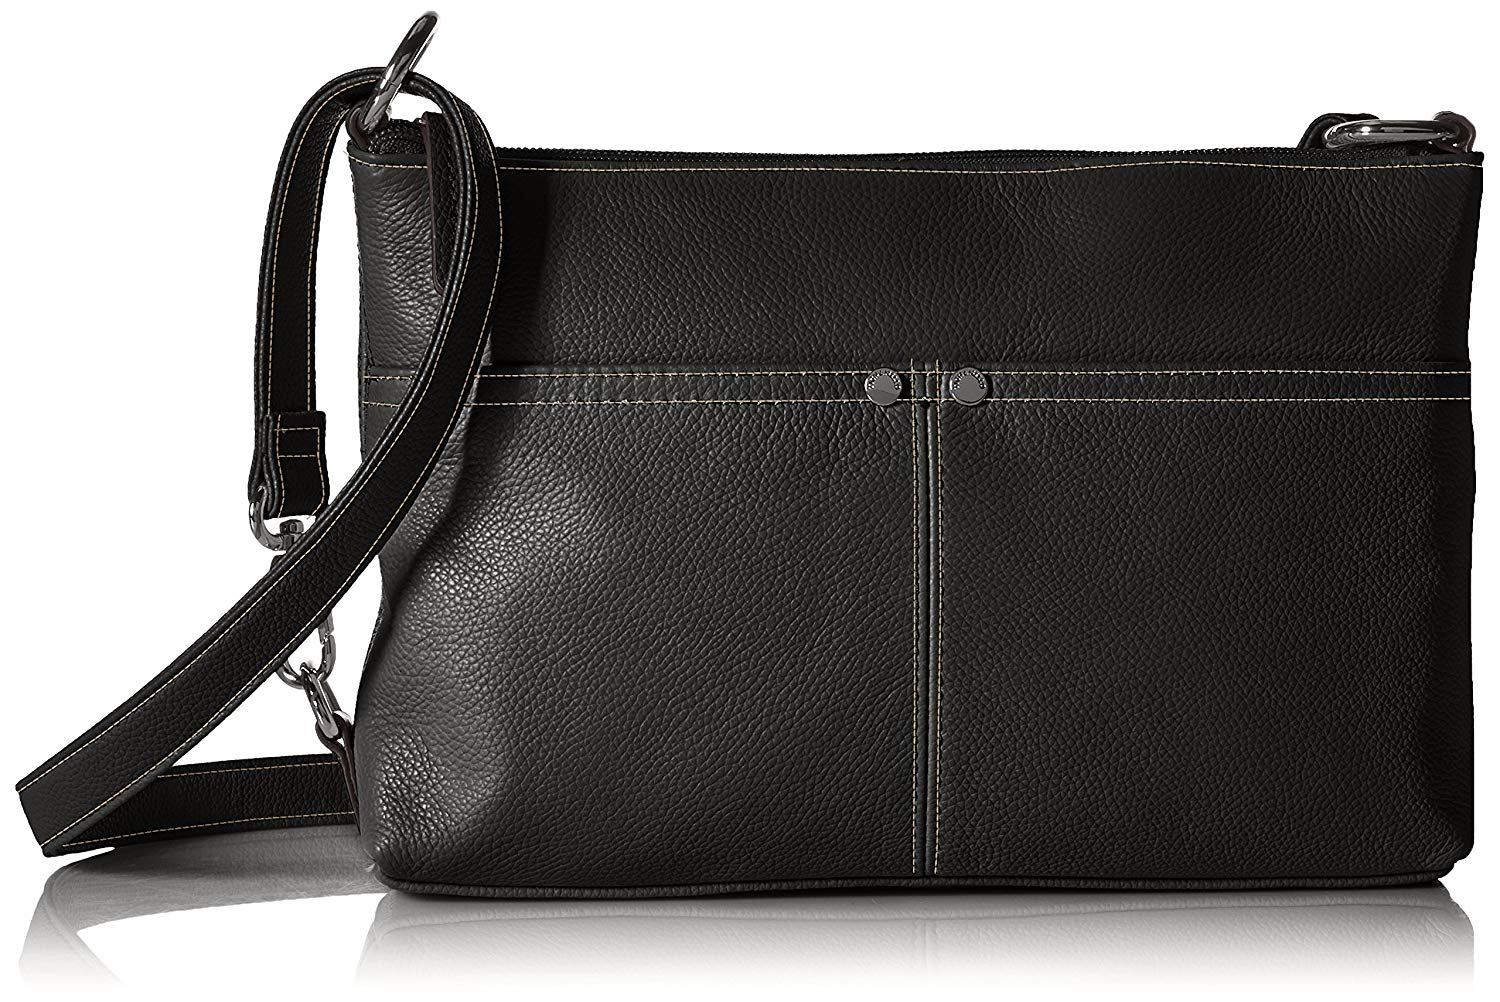 8711c145d Get Quotations · Tignanello Heritage E/W Rfid Protection Cross Body Bag